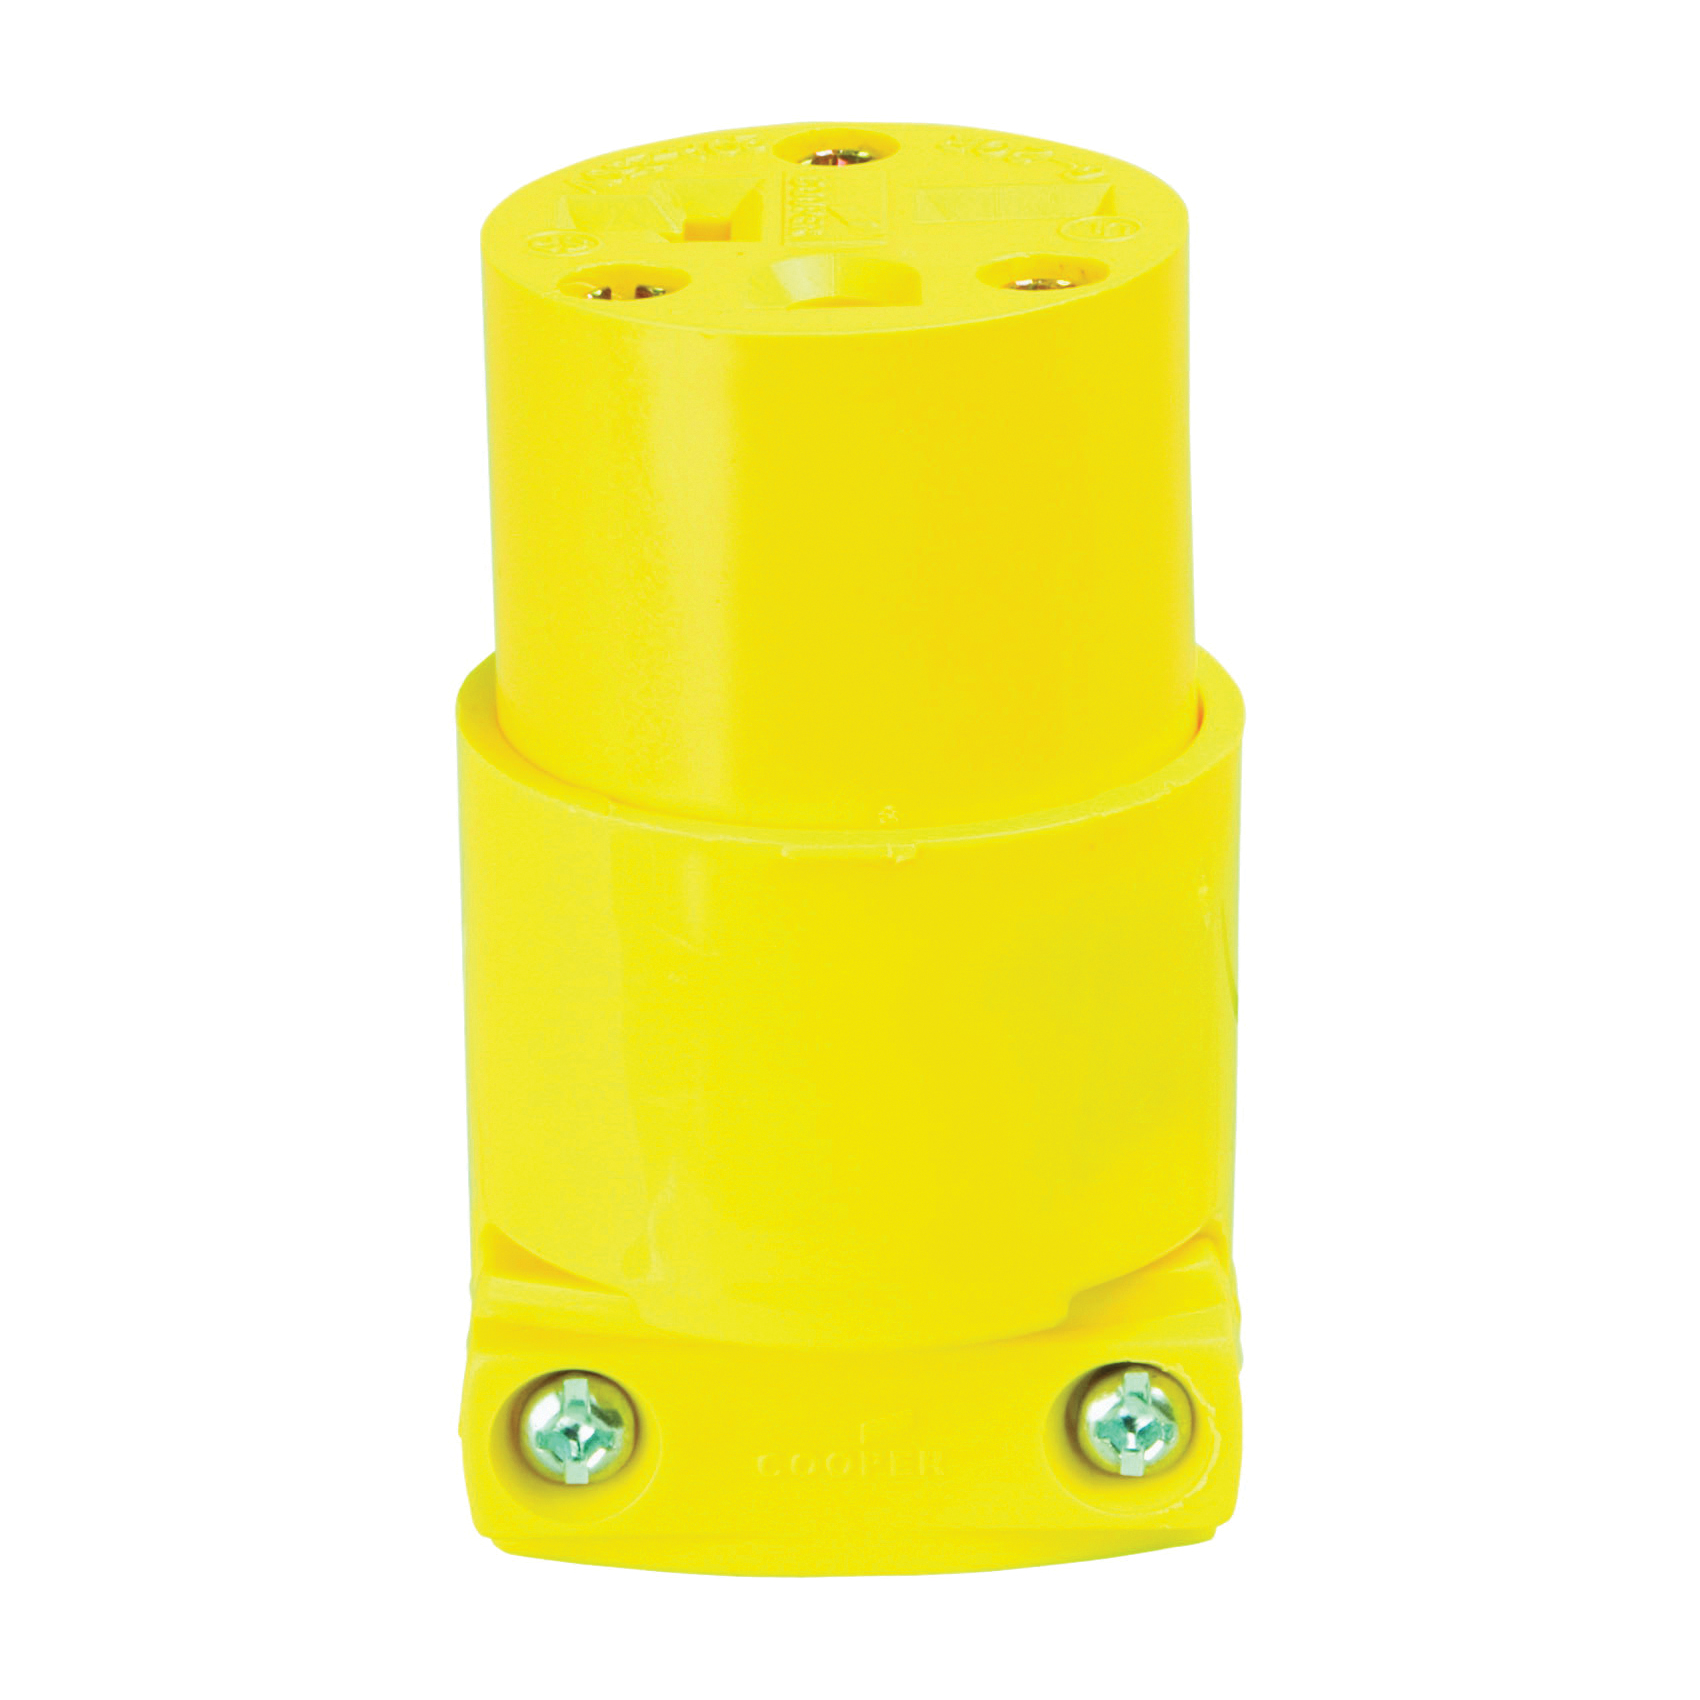 Picture of Eaton Cooper Wiring 4229-BOX Electrical Connector, 2-Pole, 20 A, 250 V, NEMA: 6-20, Yellow